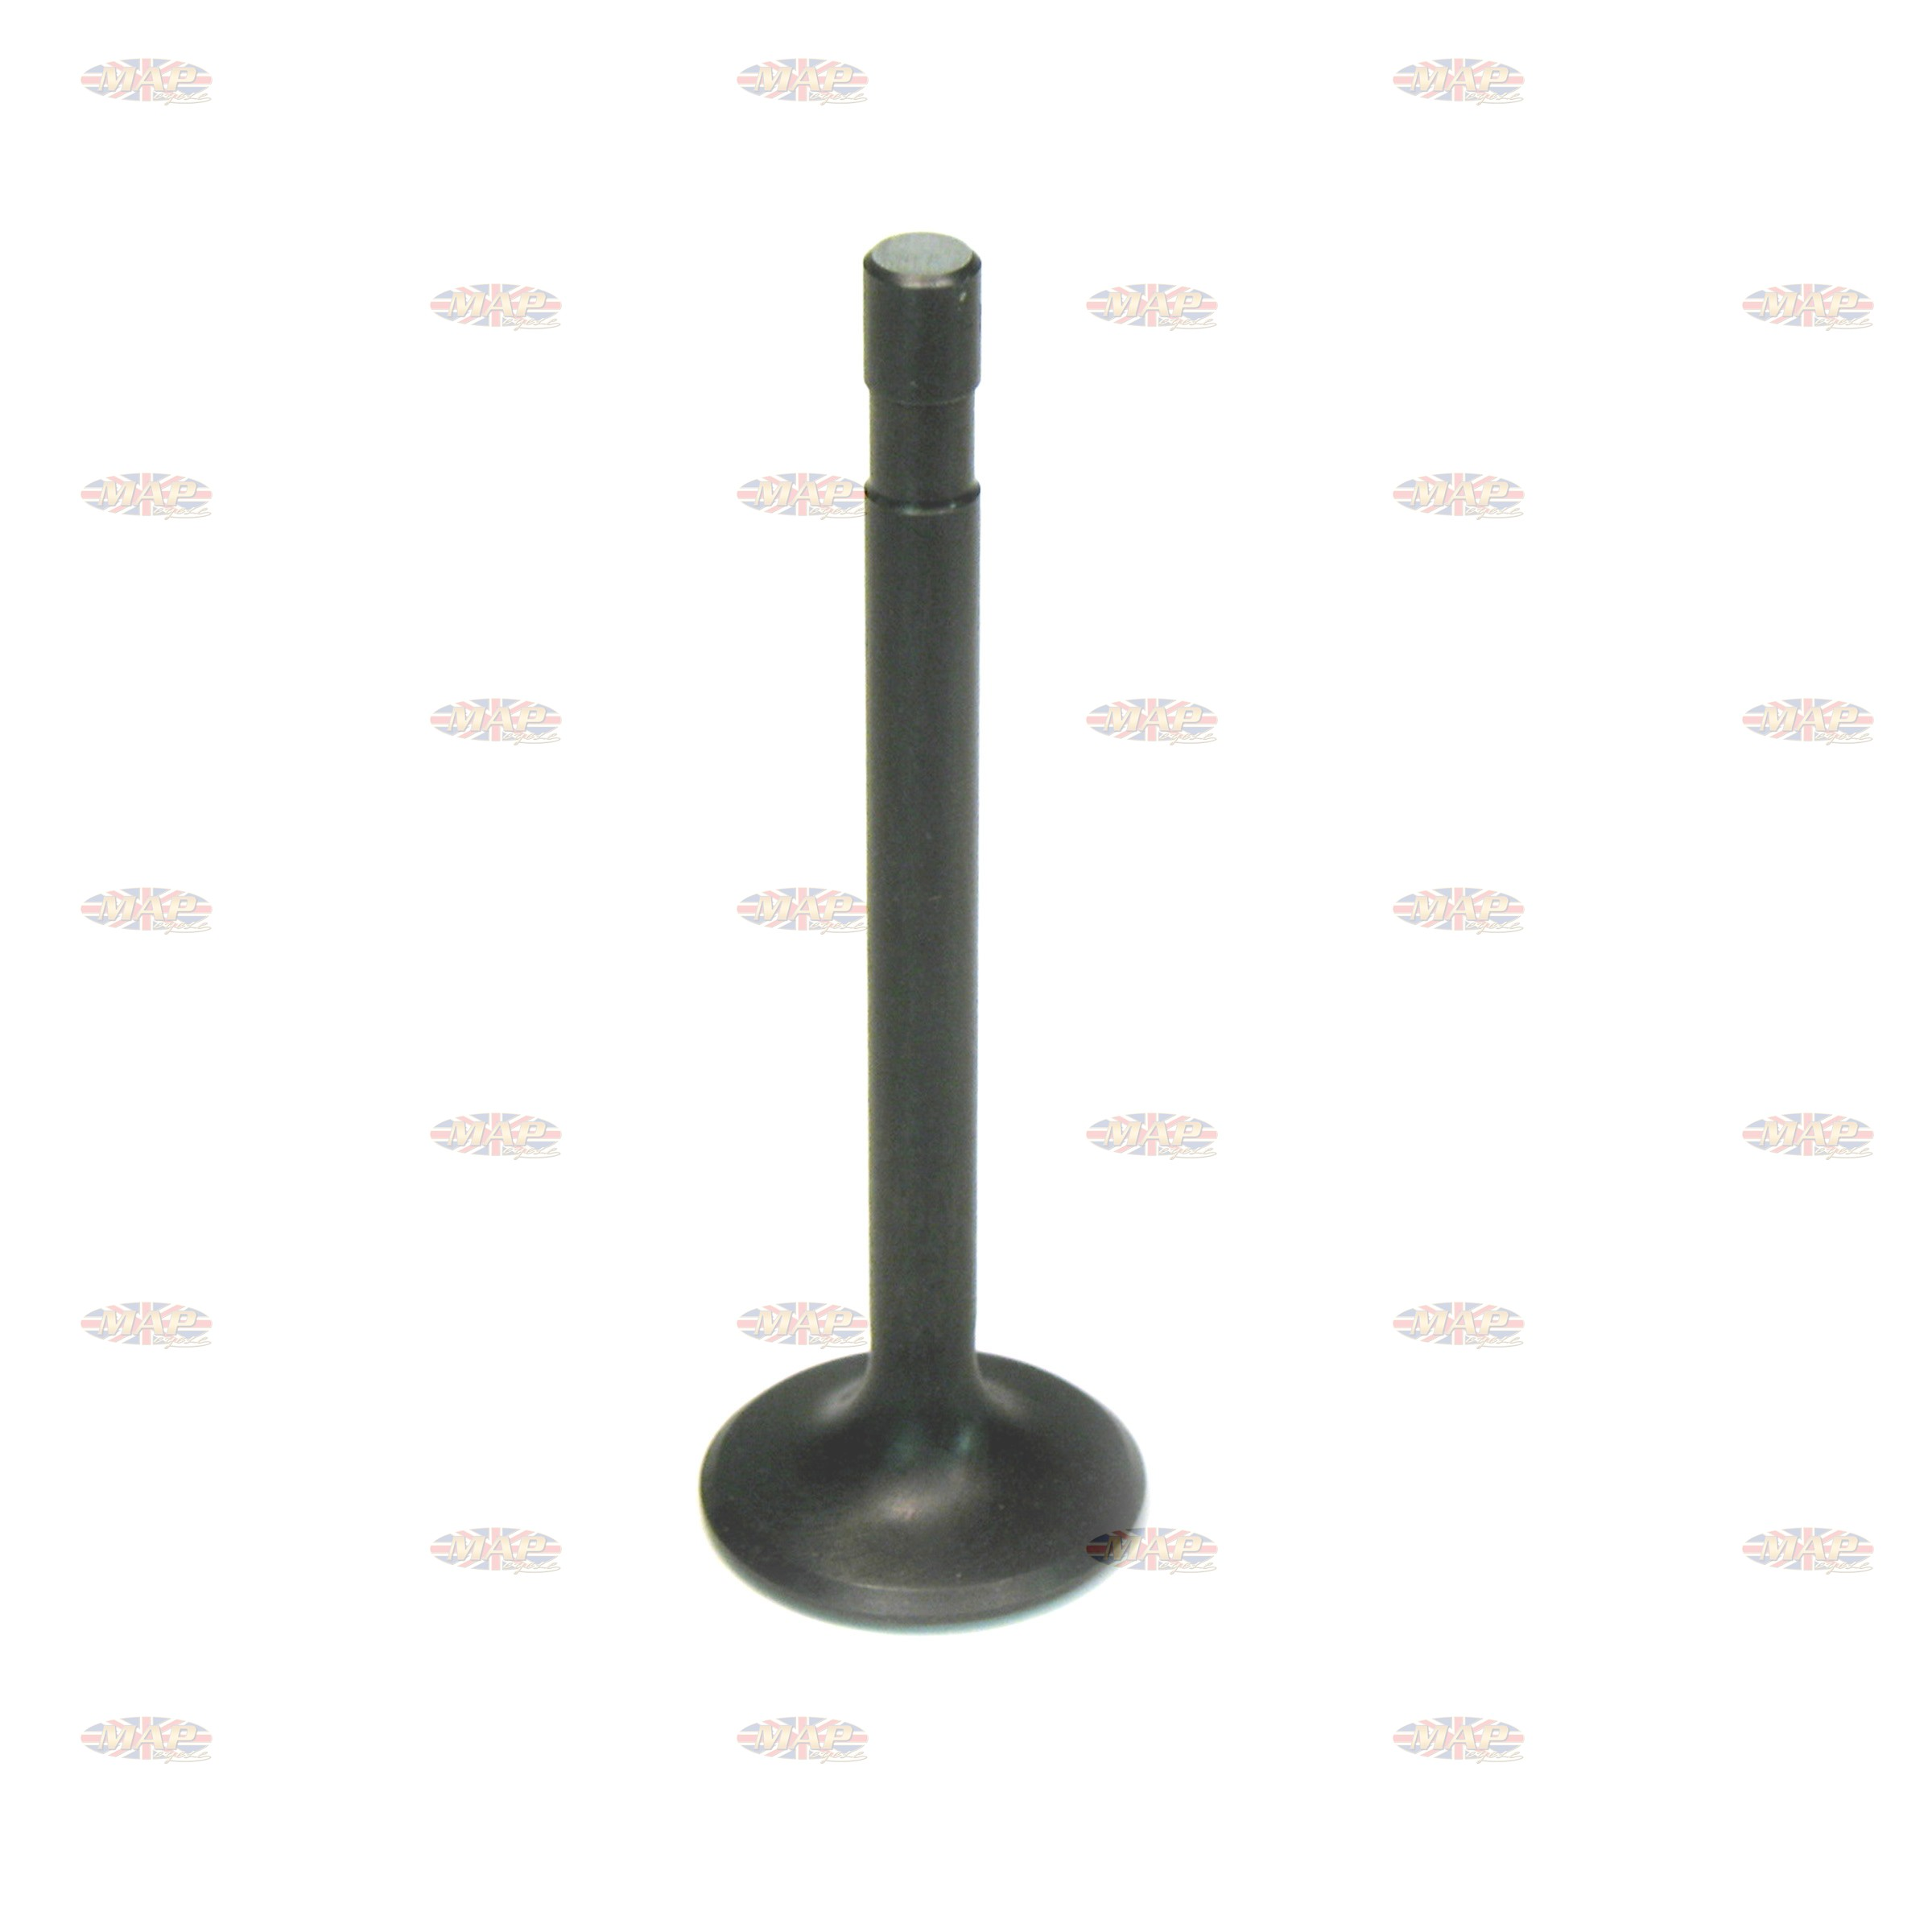 "Norton Commando Black Diamond Exhaust Valve 1.30"" MAP9198"